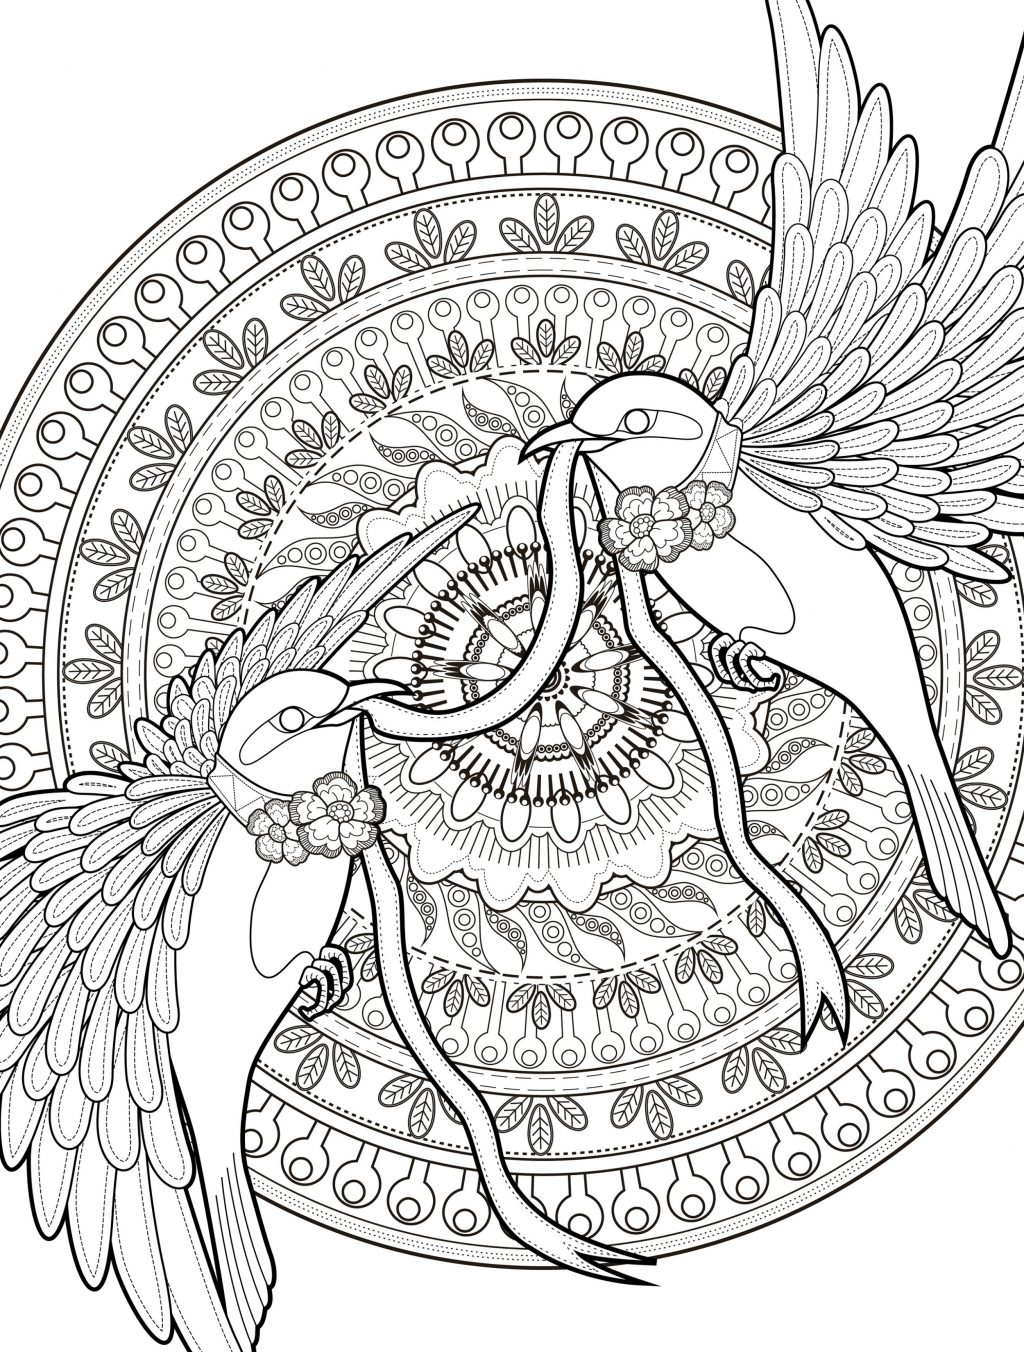 - Downloadable Coloring Pages Coloring Page Free Downloadable